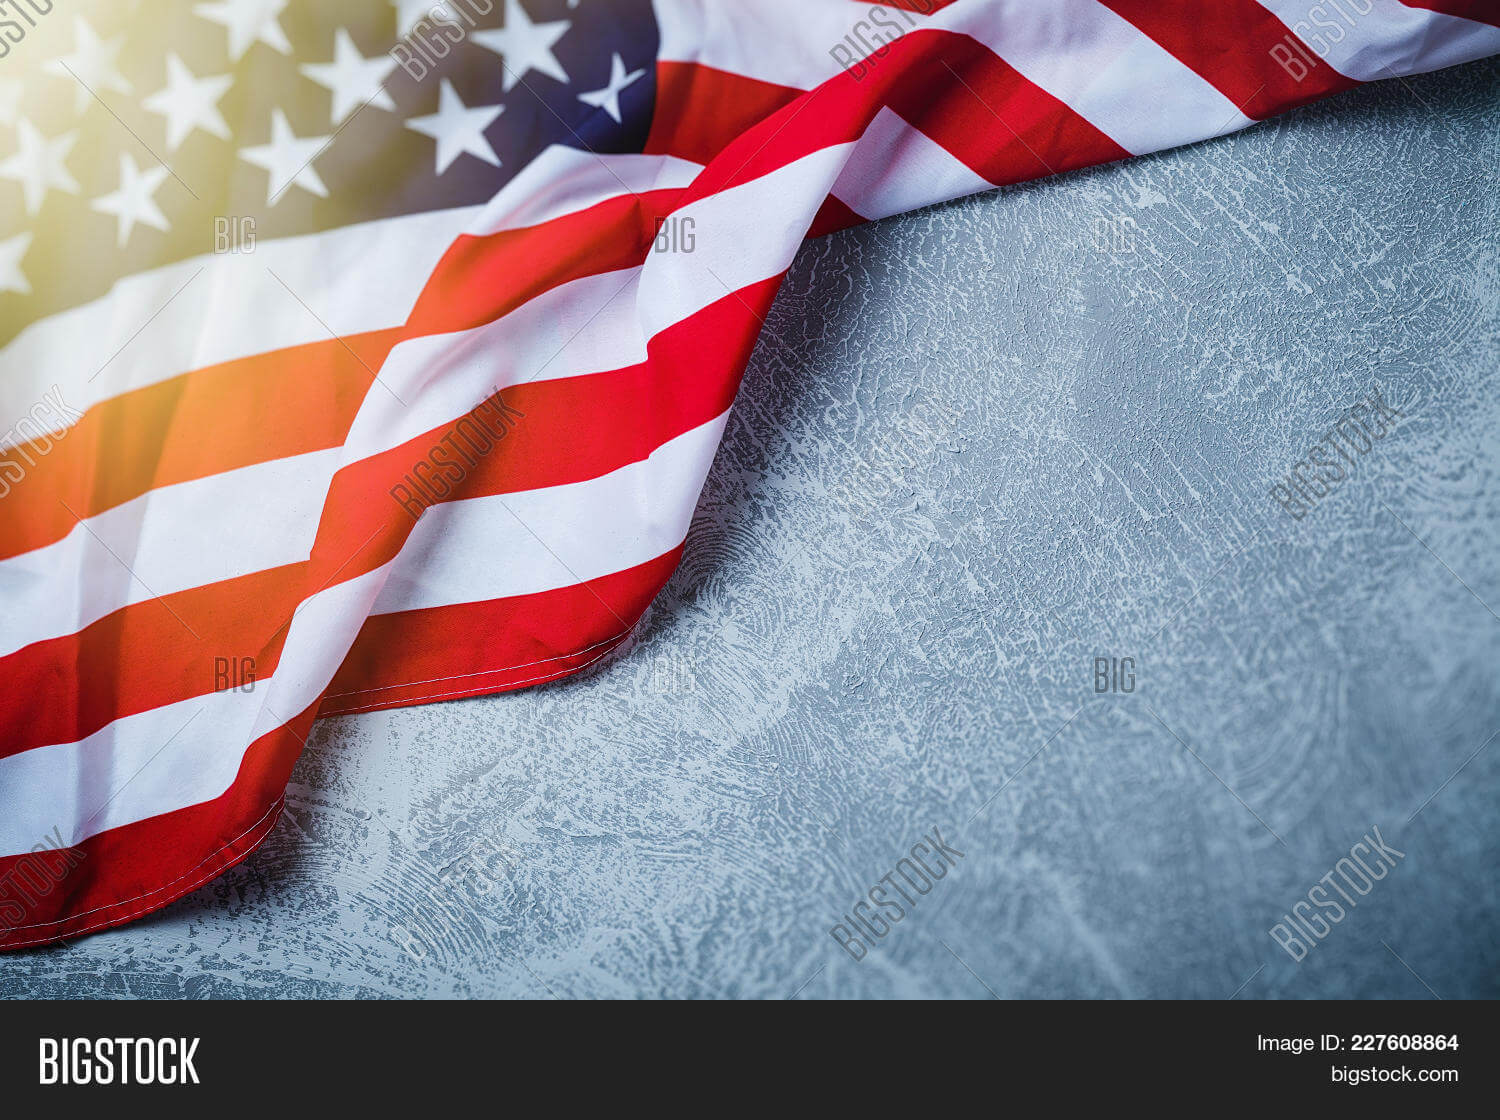 American Flag Powerpoint Background 97 Images In Templates inside American Flag Powerpoint Template